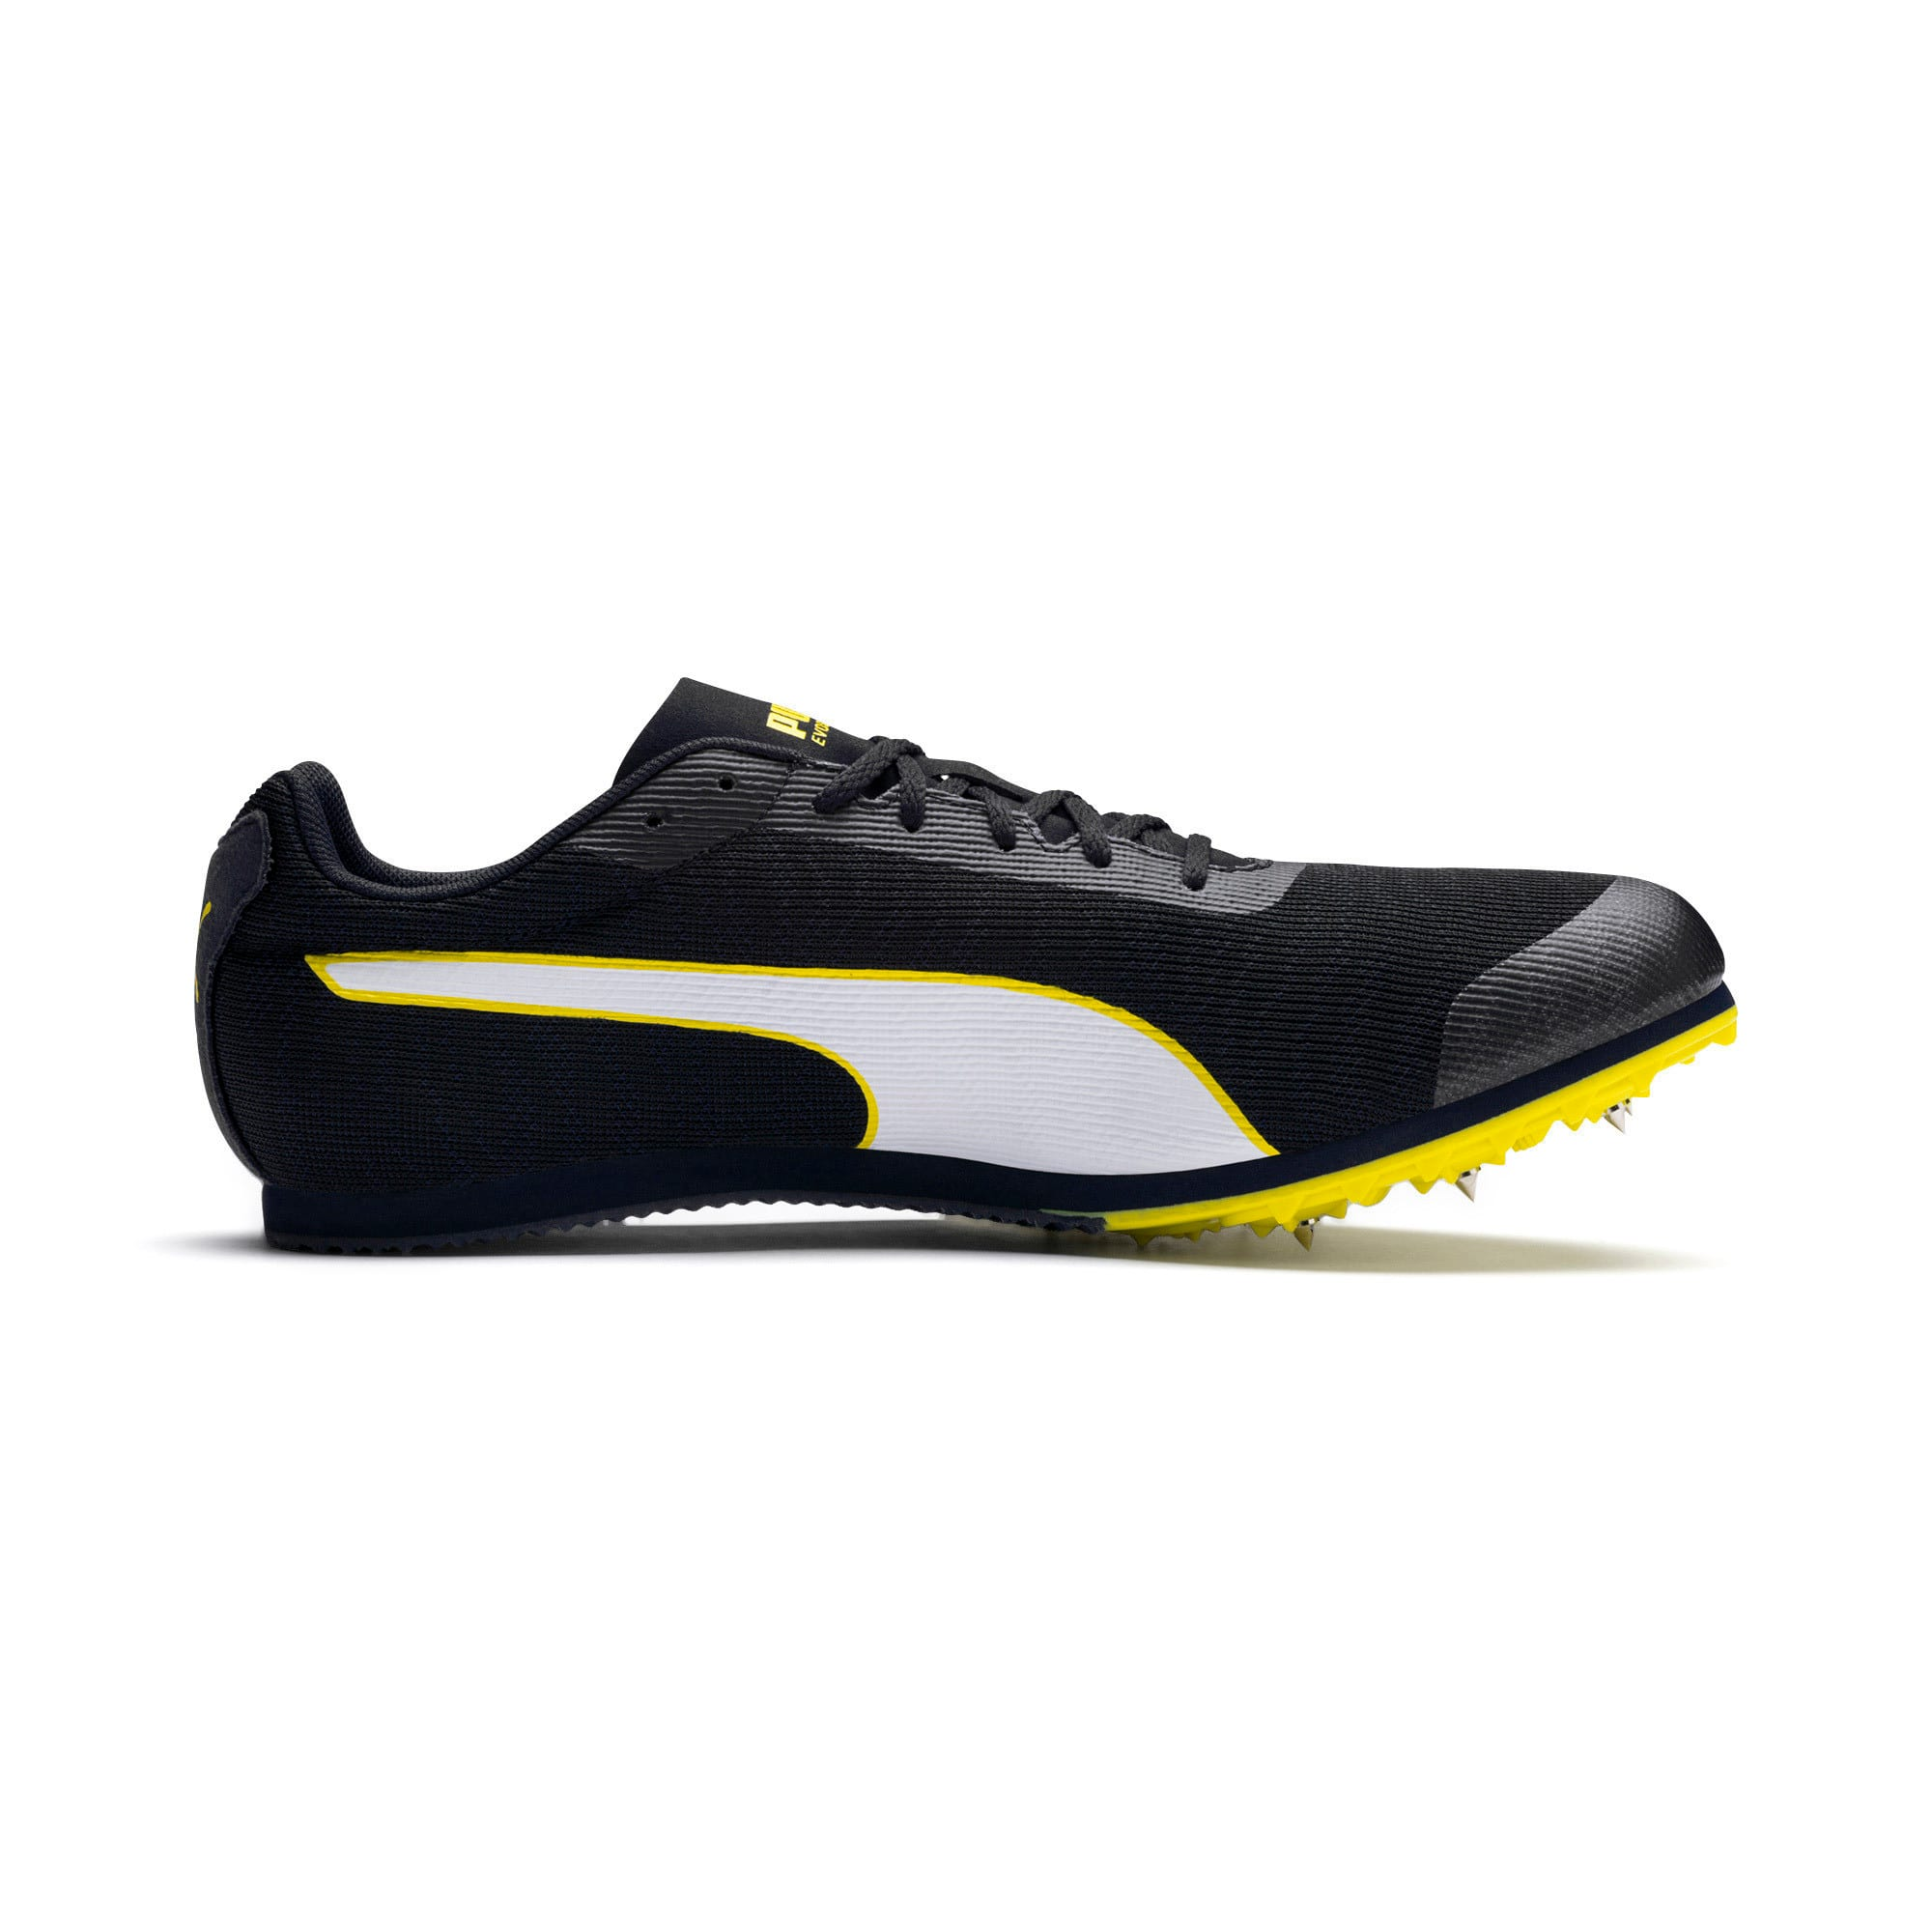 evoSPEED Star 6 Men's Track & Field Boots, Peacoat-Puma Black-Yellow, large-IND